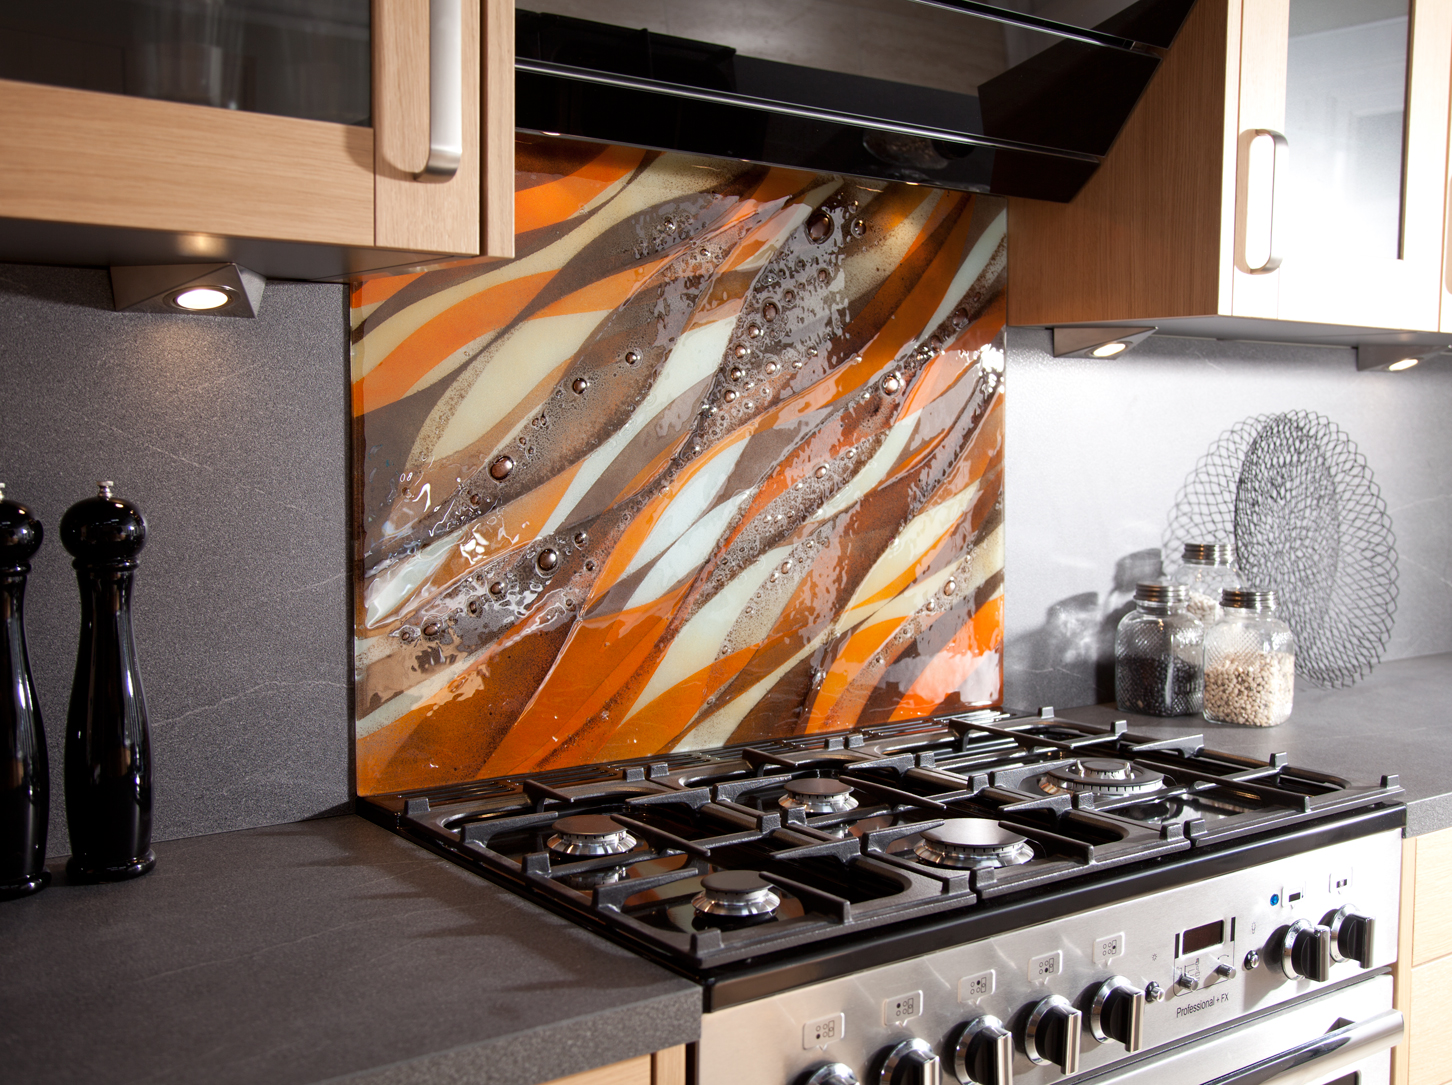 Orange wave splashback